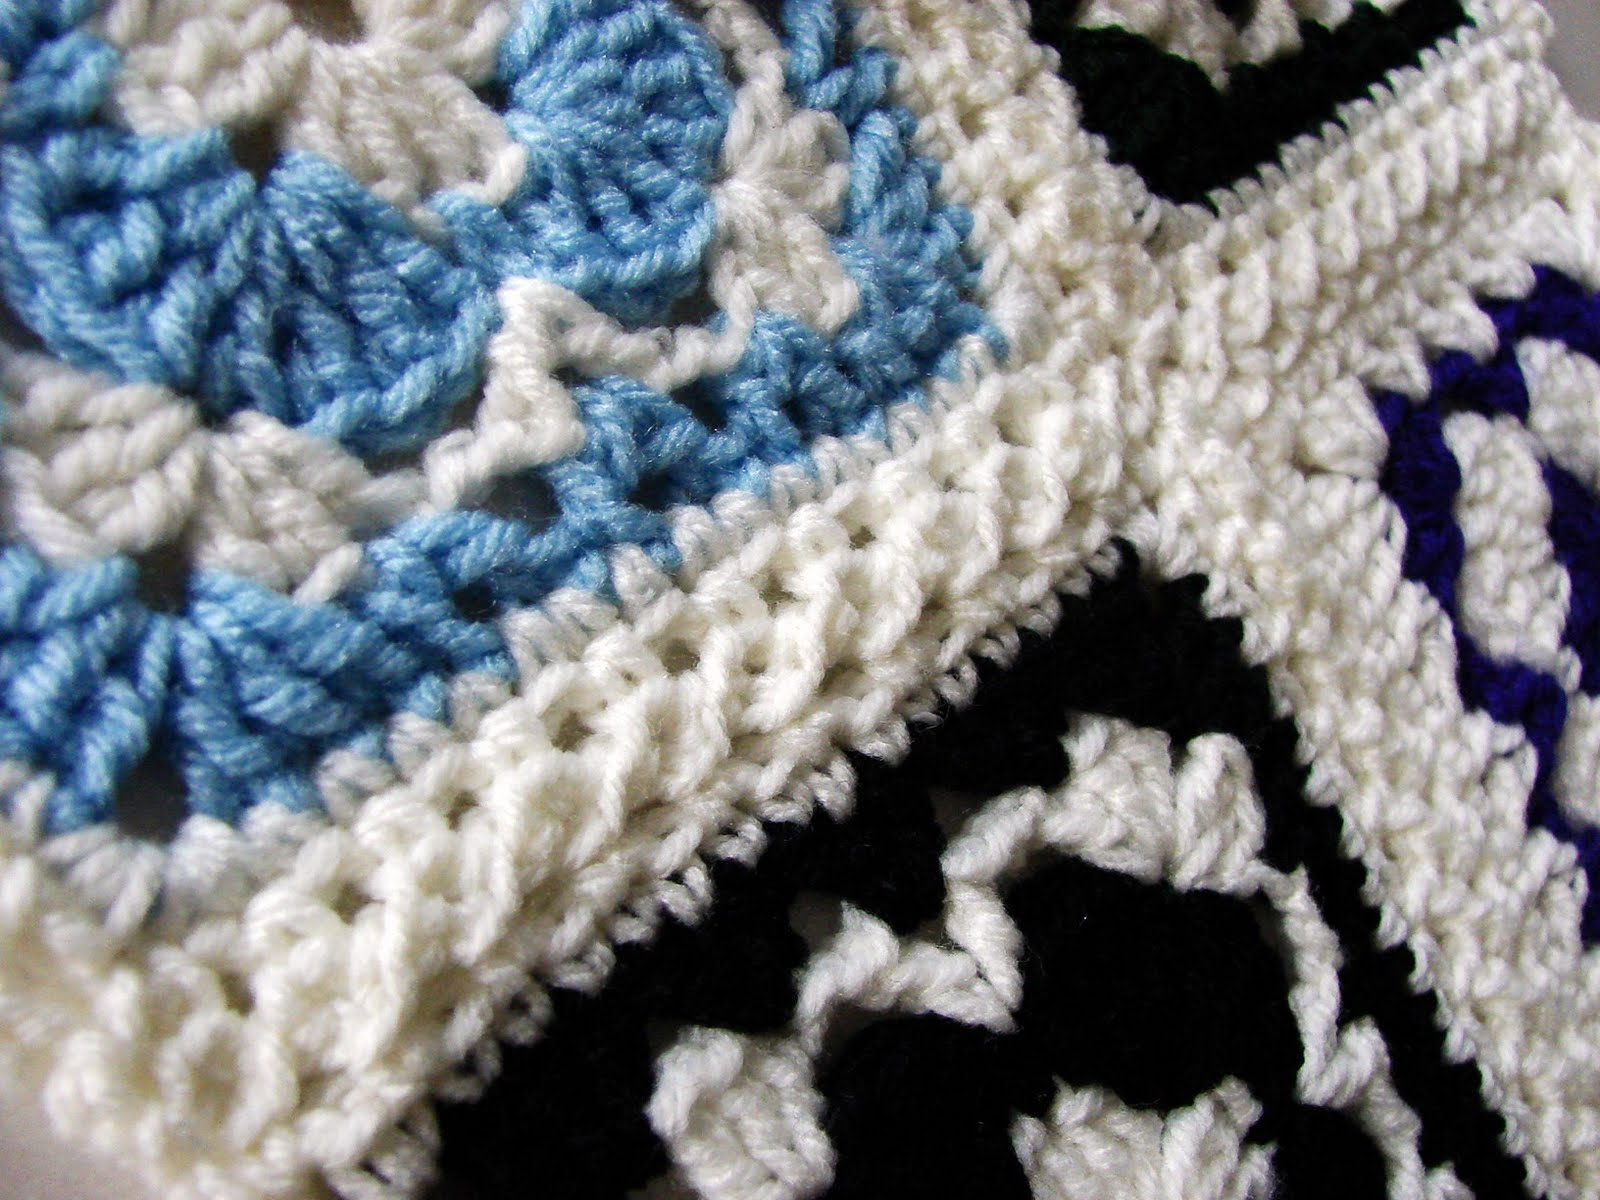 Crochet Join Stitch : MyHobbyShop: April Crochet Challenge